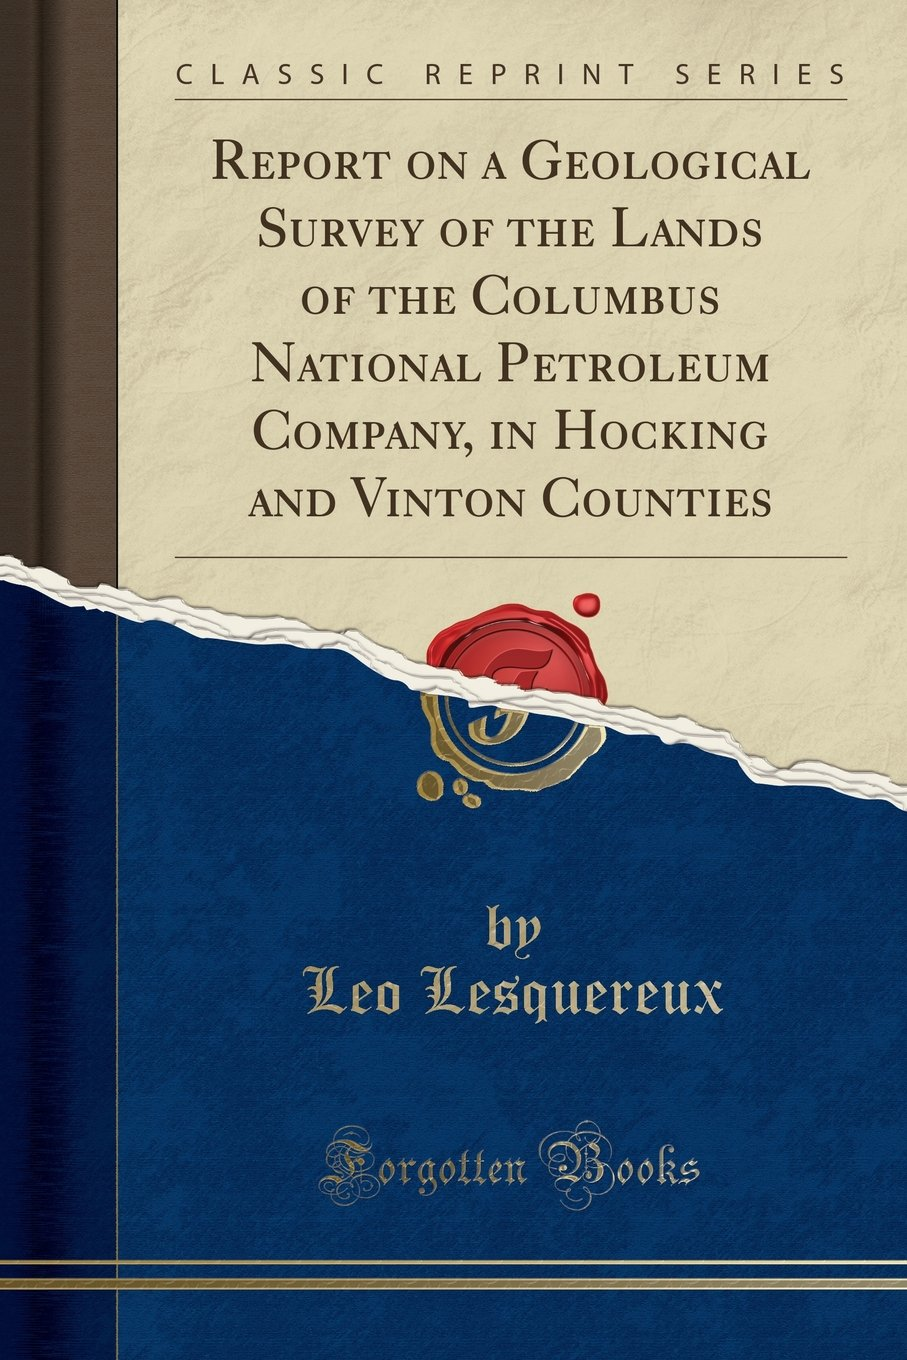 Report on a Geological Survey of the Lands of the Columbus National Petroleum Company, in Hocking and Vinton Counties (Classic Reprint) pdf